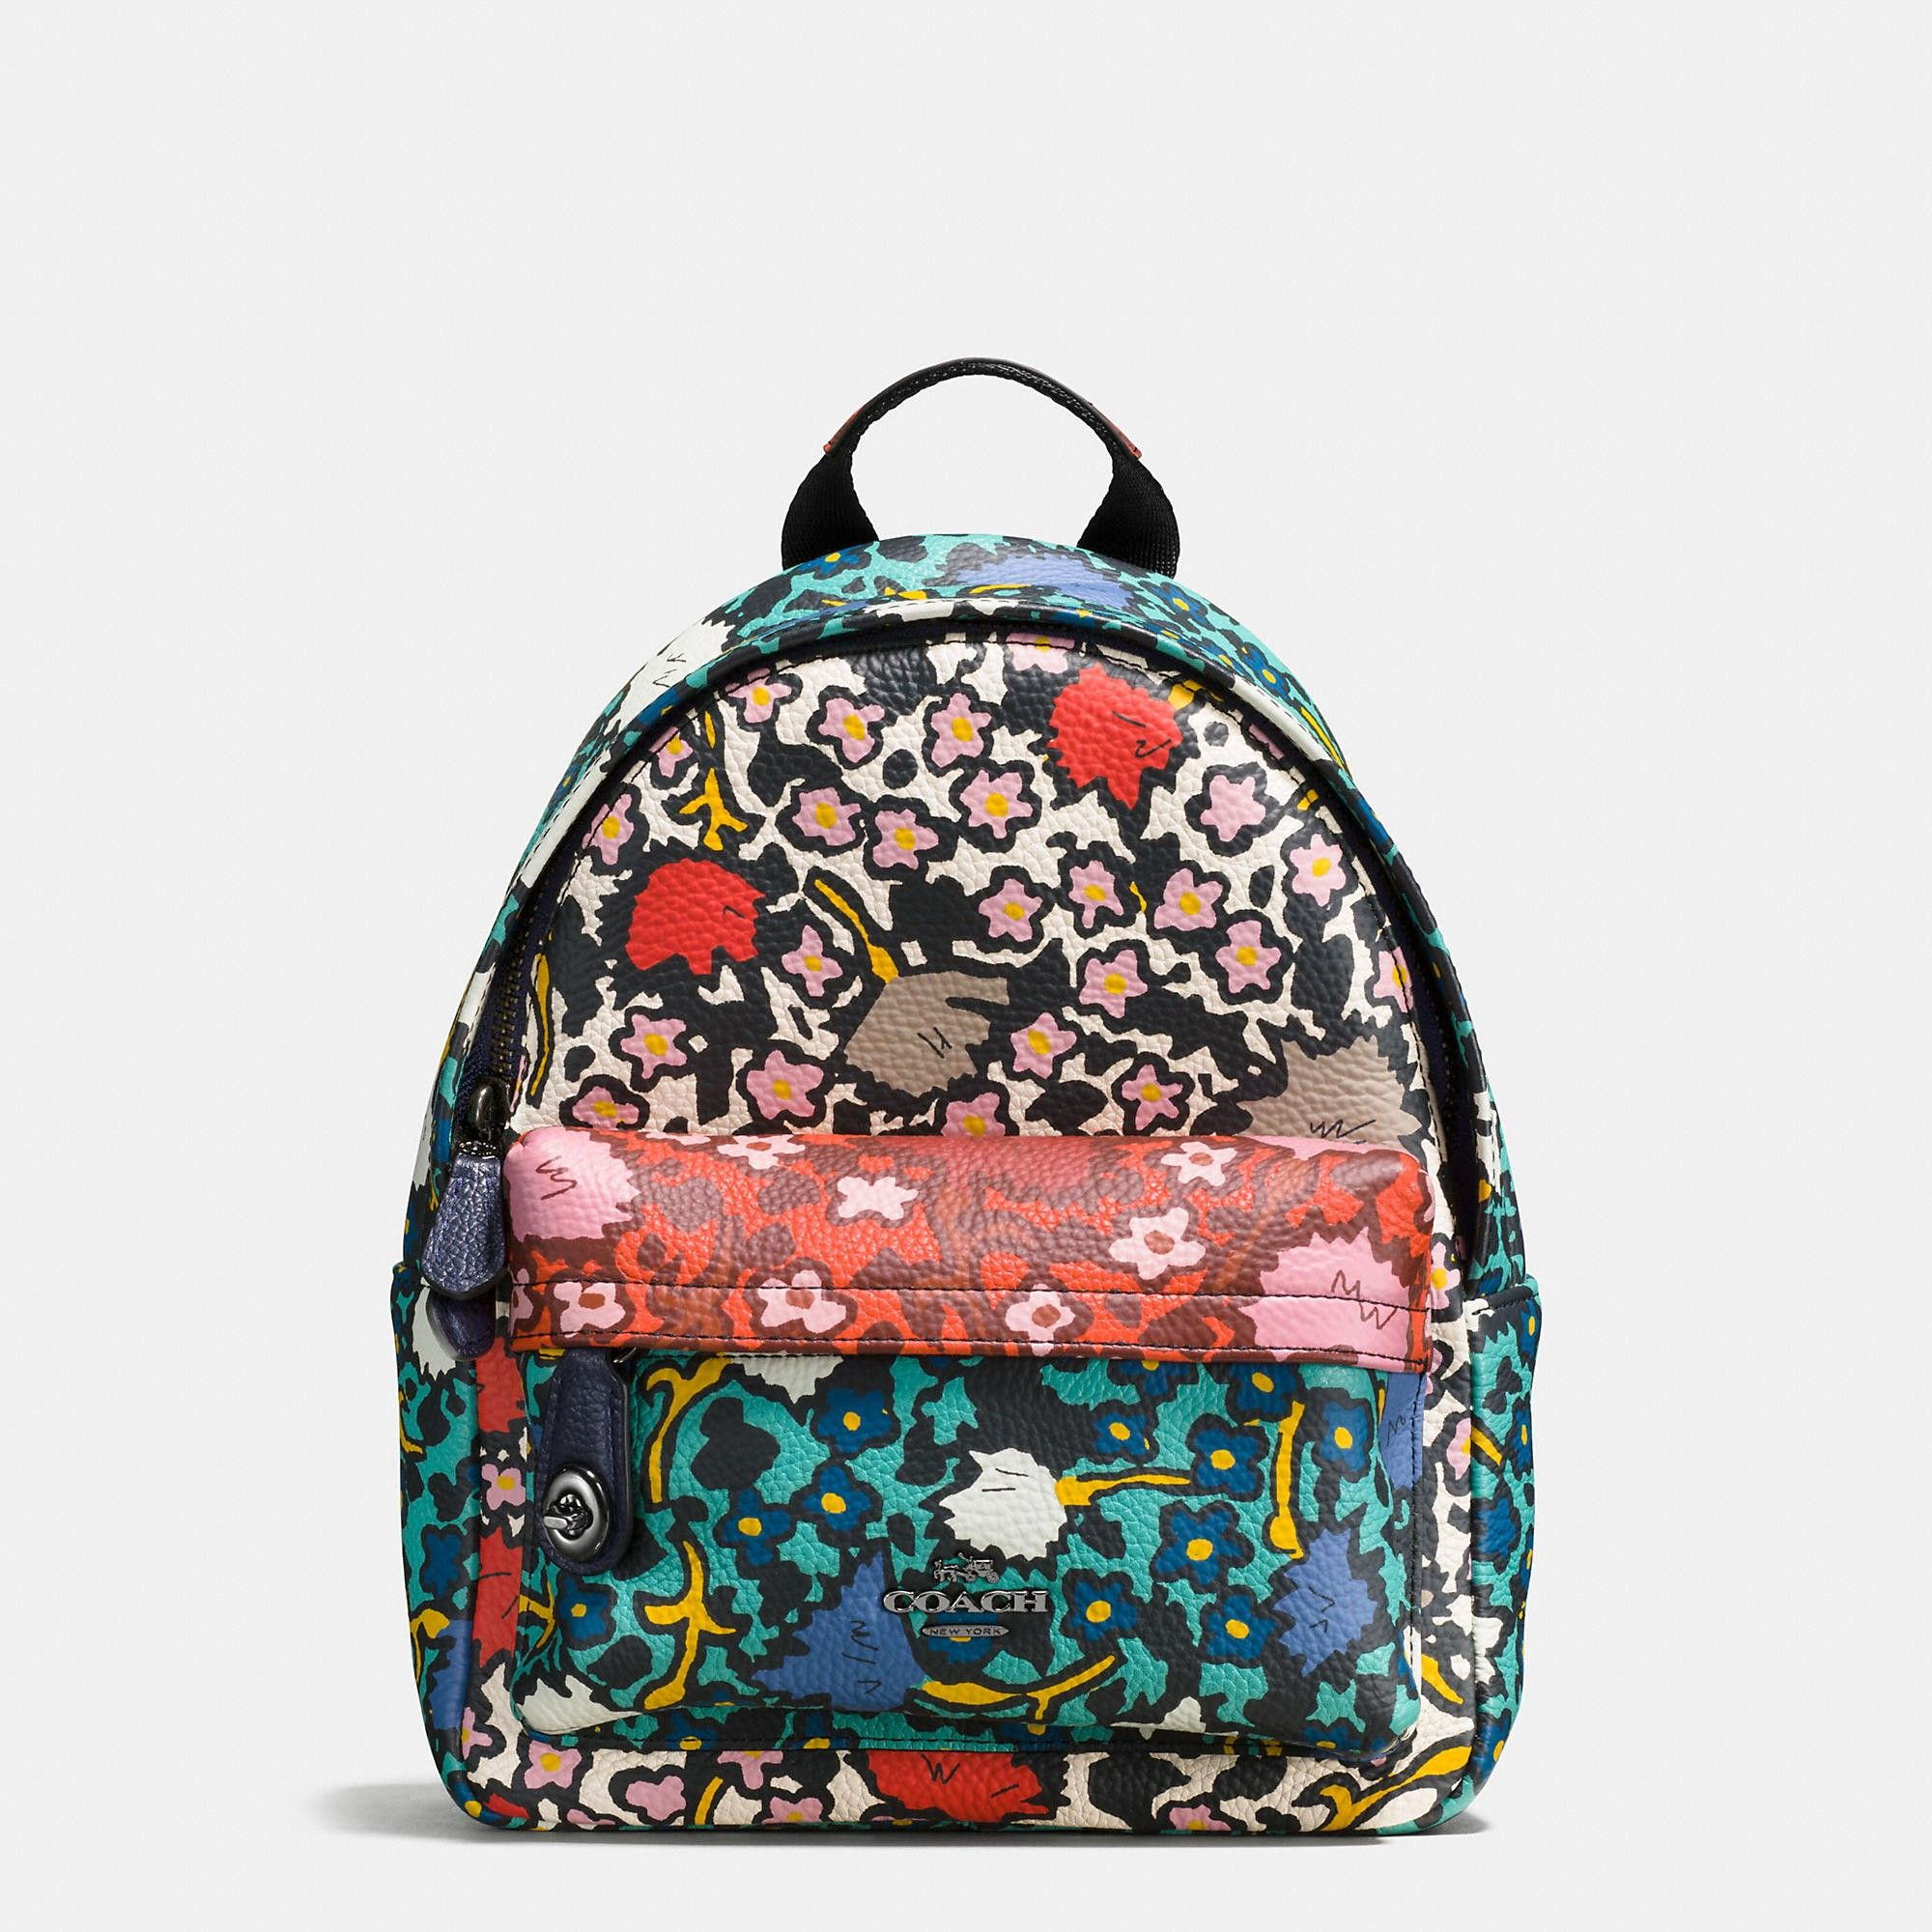 54342aa3cc COACH MINI campus backpack in multi floral print leather.  coach  bags   leather  lining  backpacks